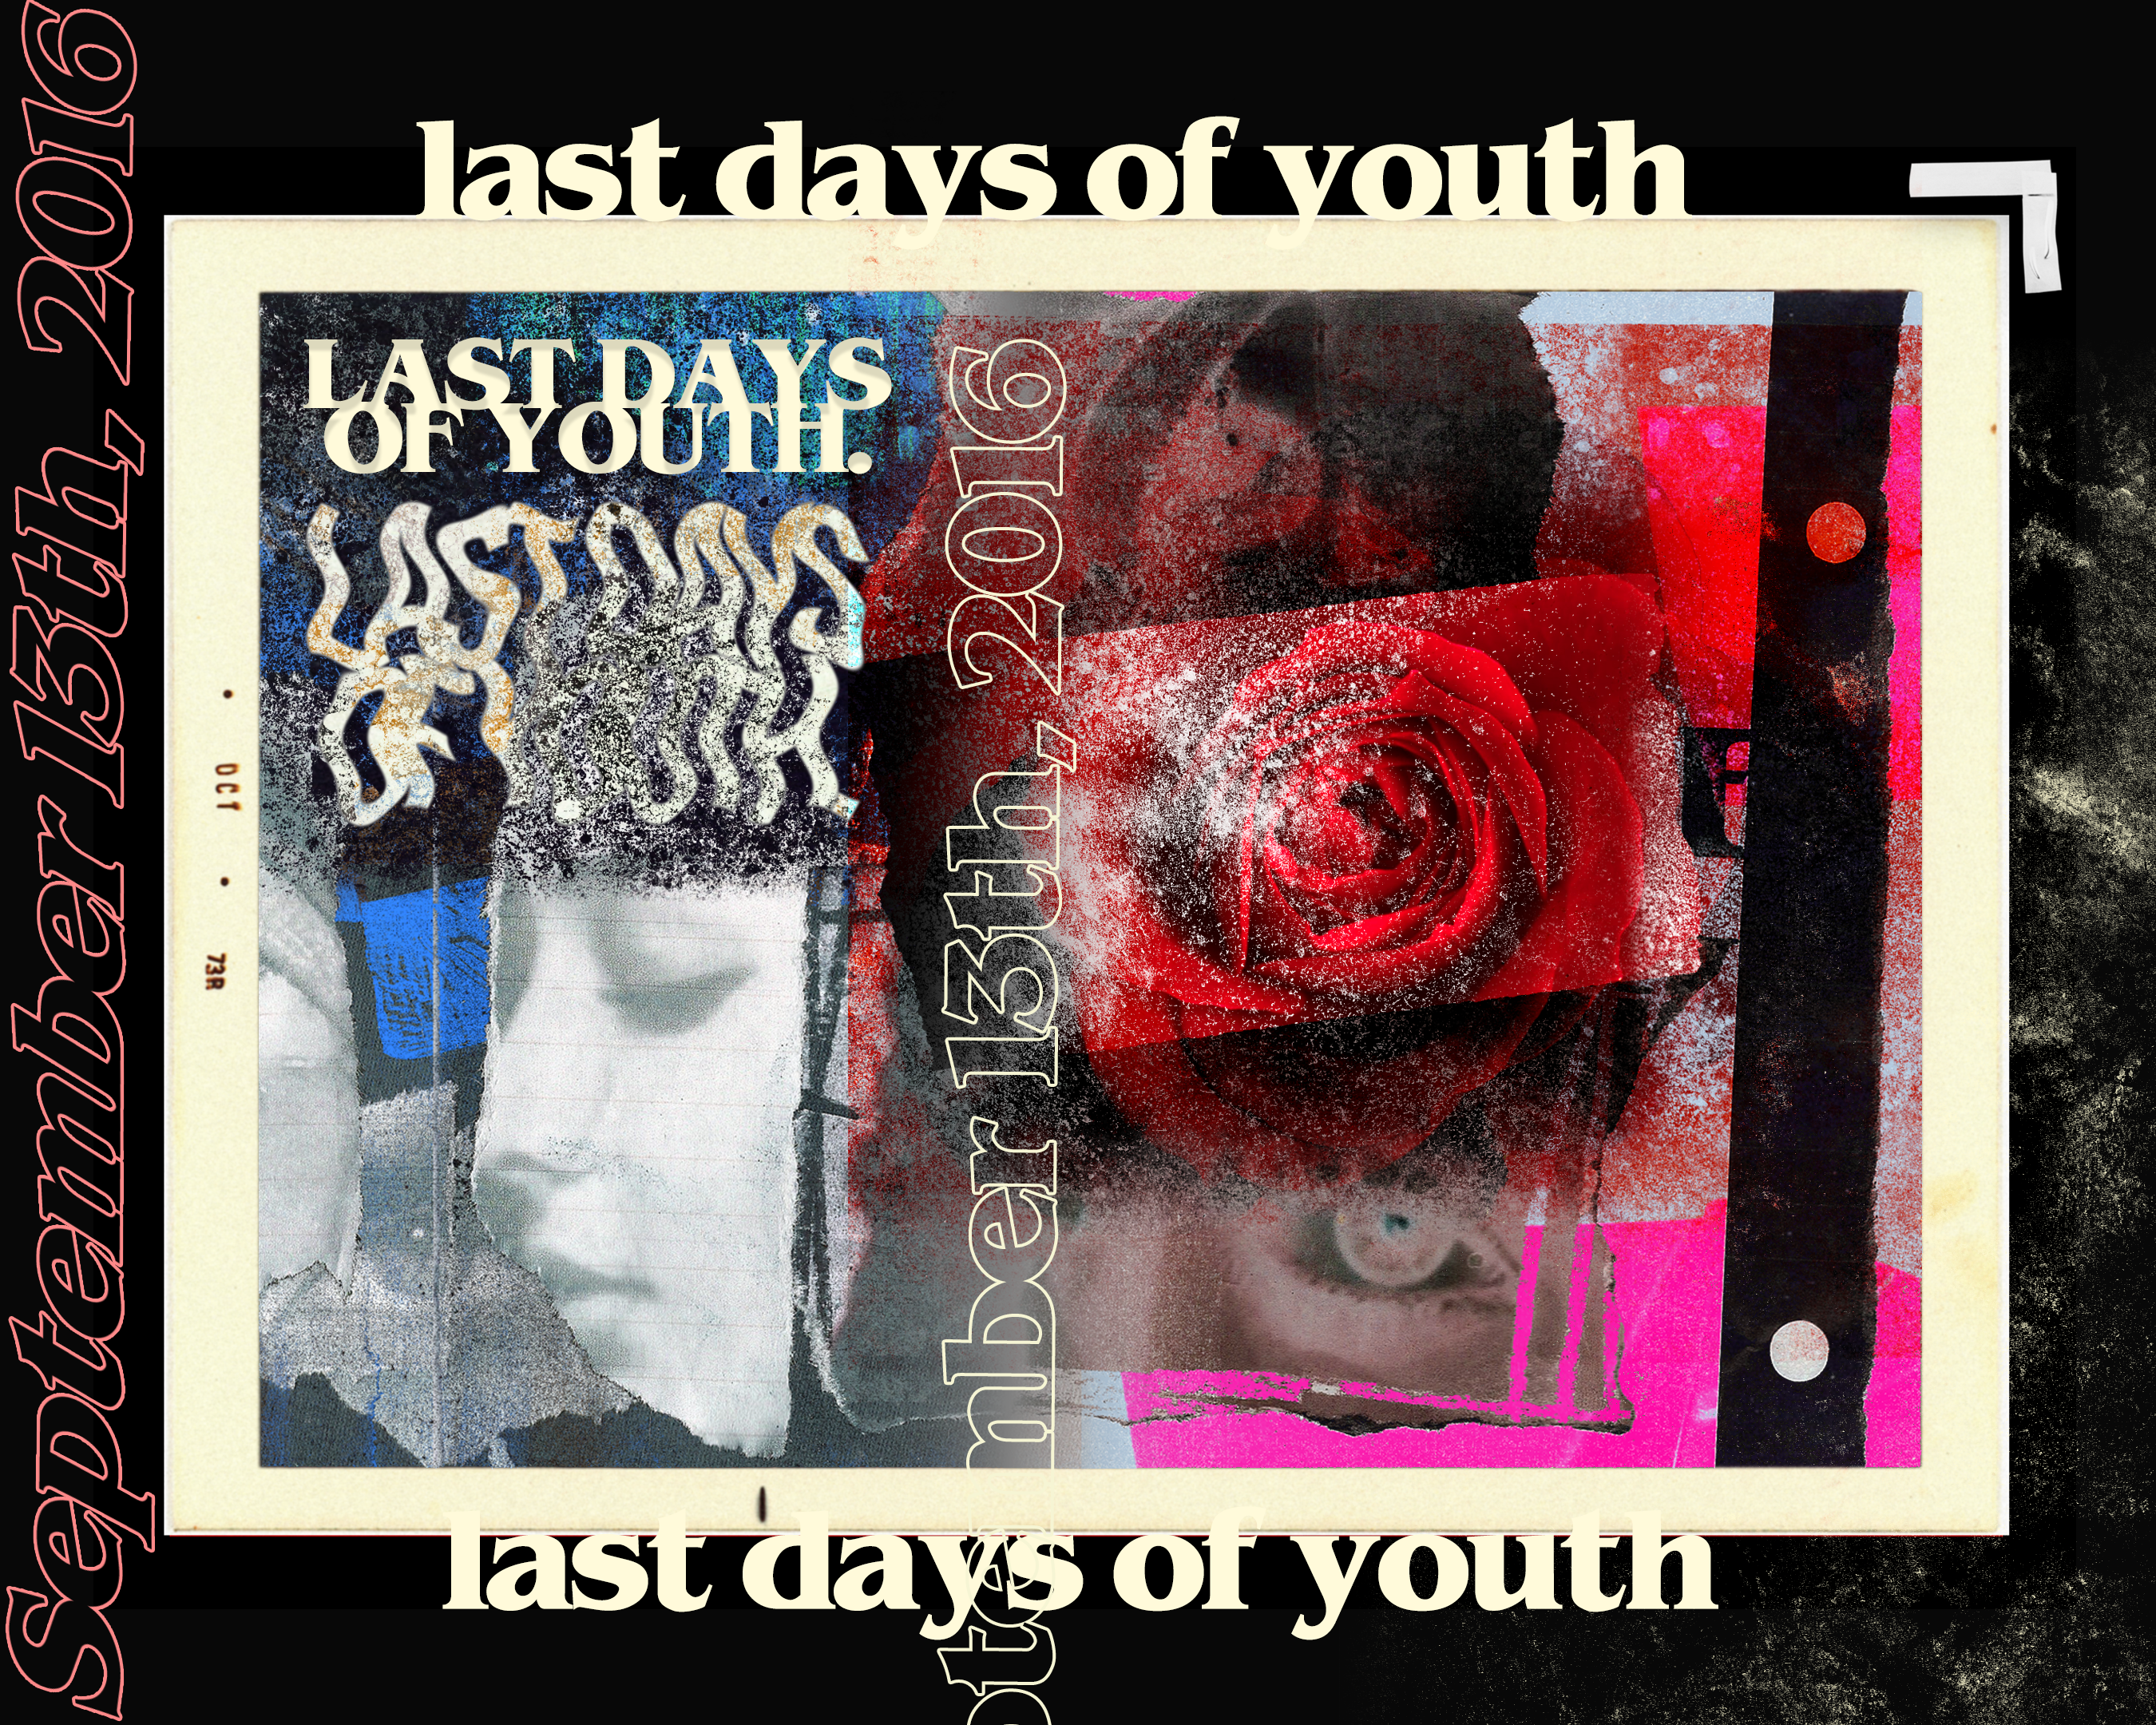 'Last days of youth' 2016 - Ethan Solouki